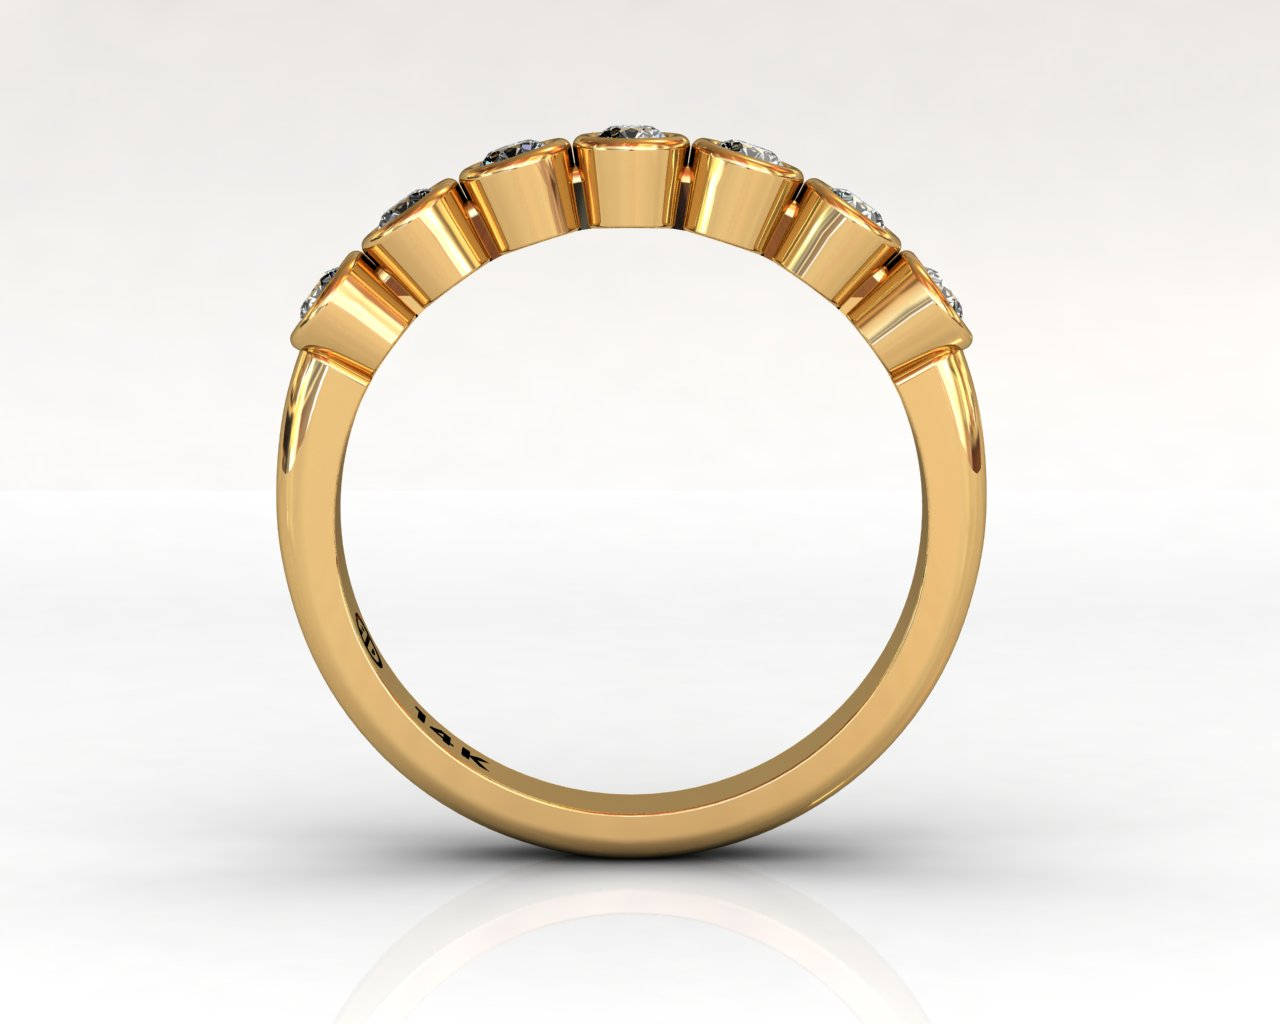 Wedding Bands Ladies 7 Stone Bezel Diamonds 0.29 TCW 14kt 3.17g Yellow Gold South Bay Gold